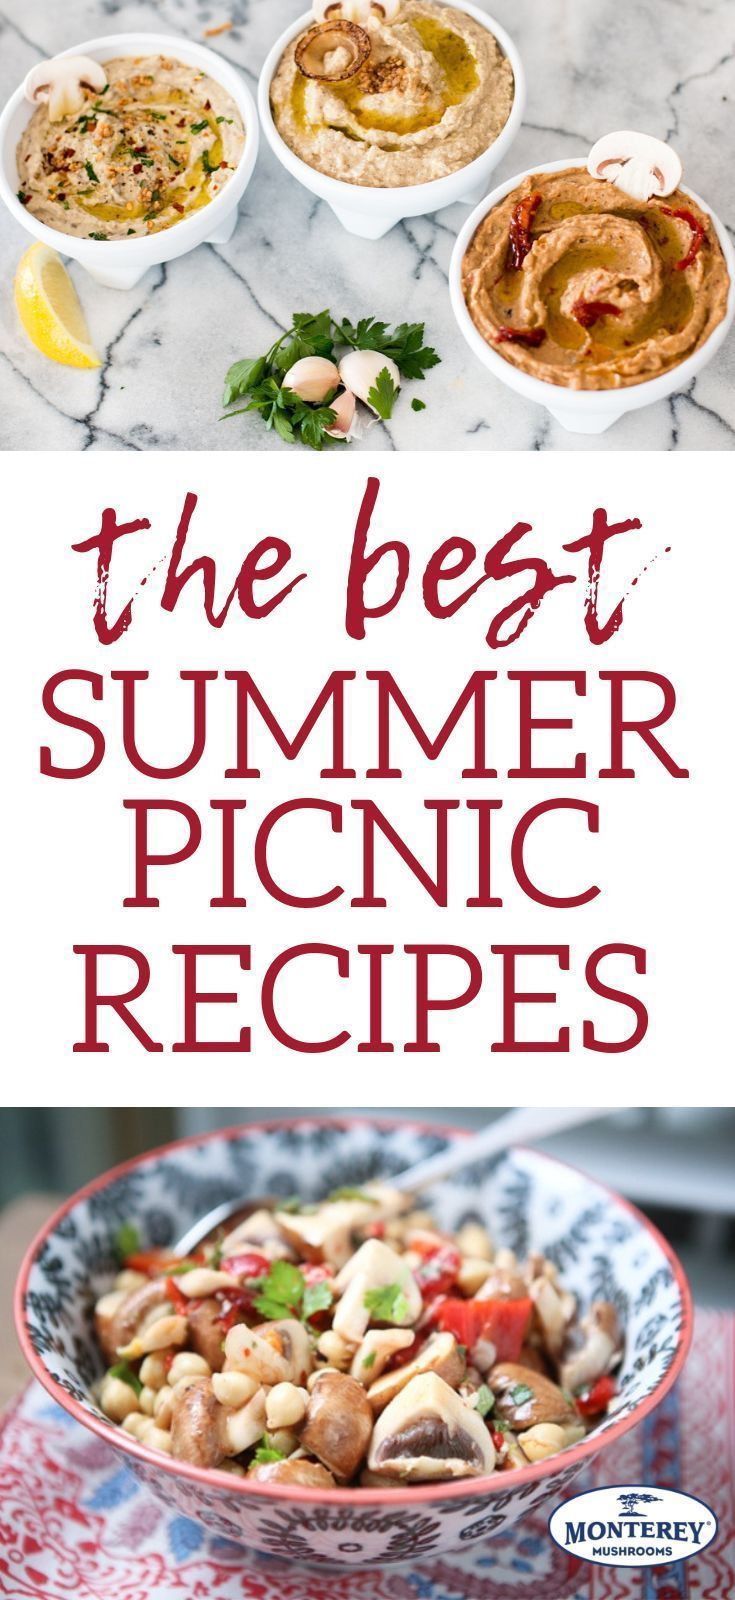 The Ultimate Picnic Smorgasbord, Featuring... You Guessed It... Mushrooms! #familypicnicfoods Plan a smorgasboard of delicious meals for your al fresco dining!  These summer picnic recipes are perfect to enjoy outdoors with friends and family. #picnic #summerrecipes #healthyfood #familypicnicfoods The Ultimate Picnic Smorgasbord, Featuring... You Guessed It... Mushrooms! #familypicnicfoods Plan a smorgasboard of delicious meals for your al fresco dining!  These summer picnic recipes are perfect #familypicnicfoods